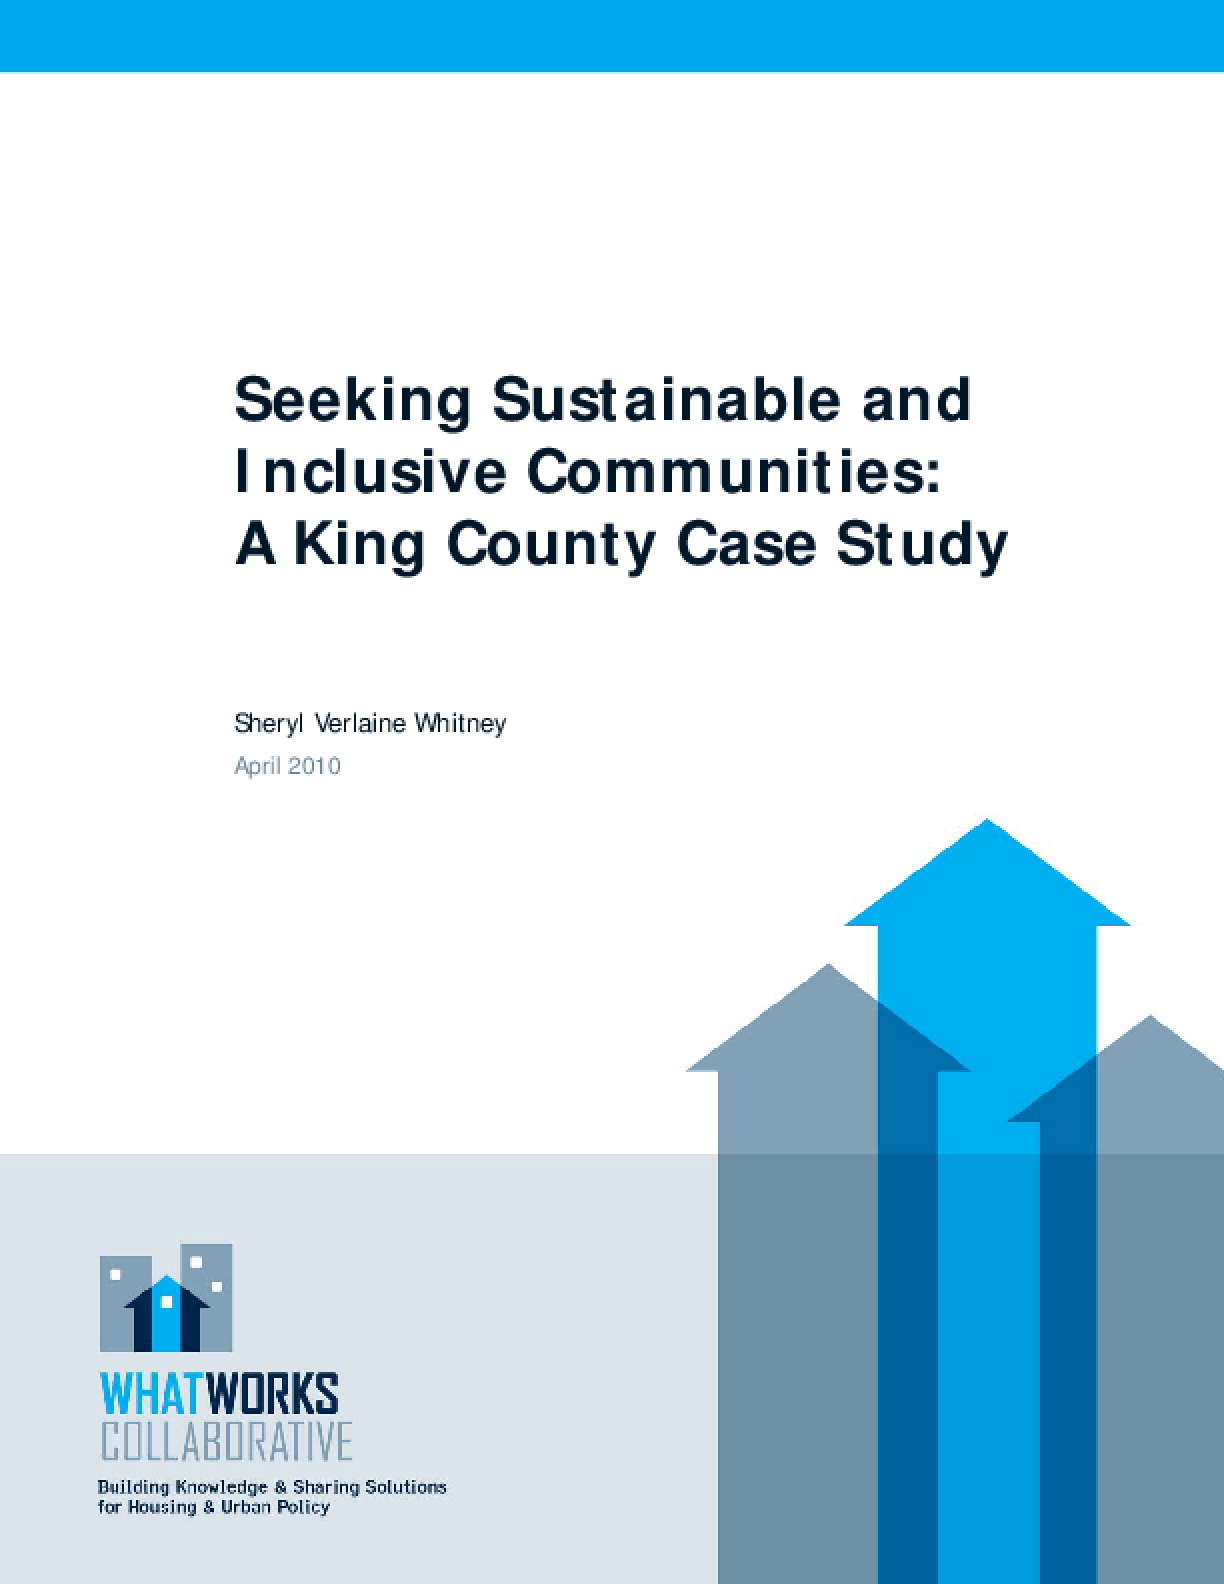 Seeking Sustainable and Inclusive Communities: A King County Case Study